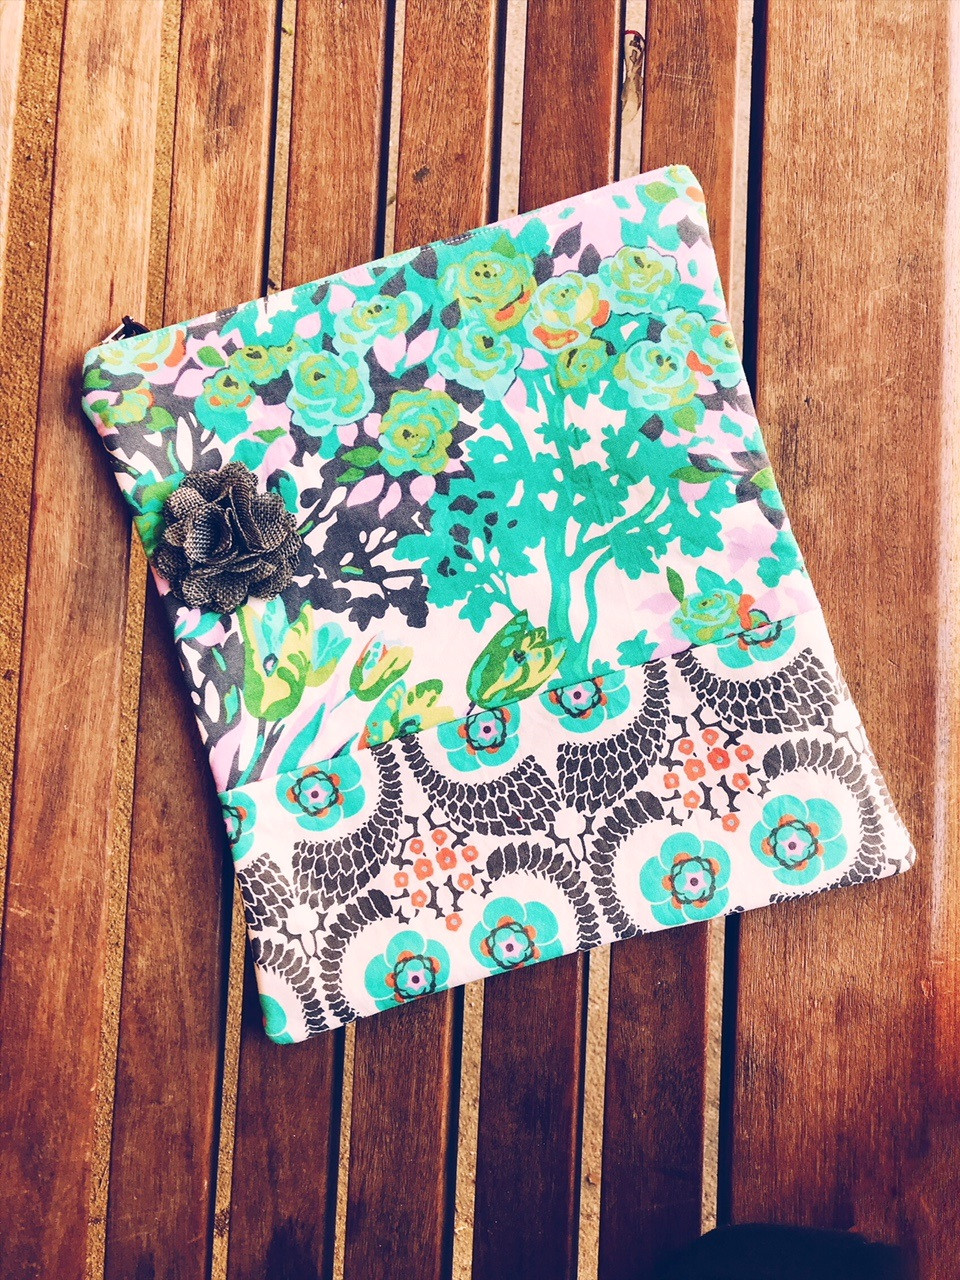 Summer Clutch Bags - Floral